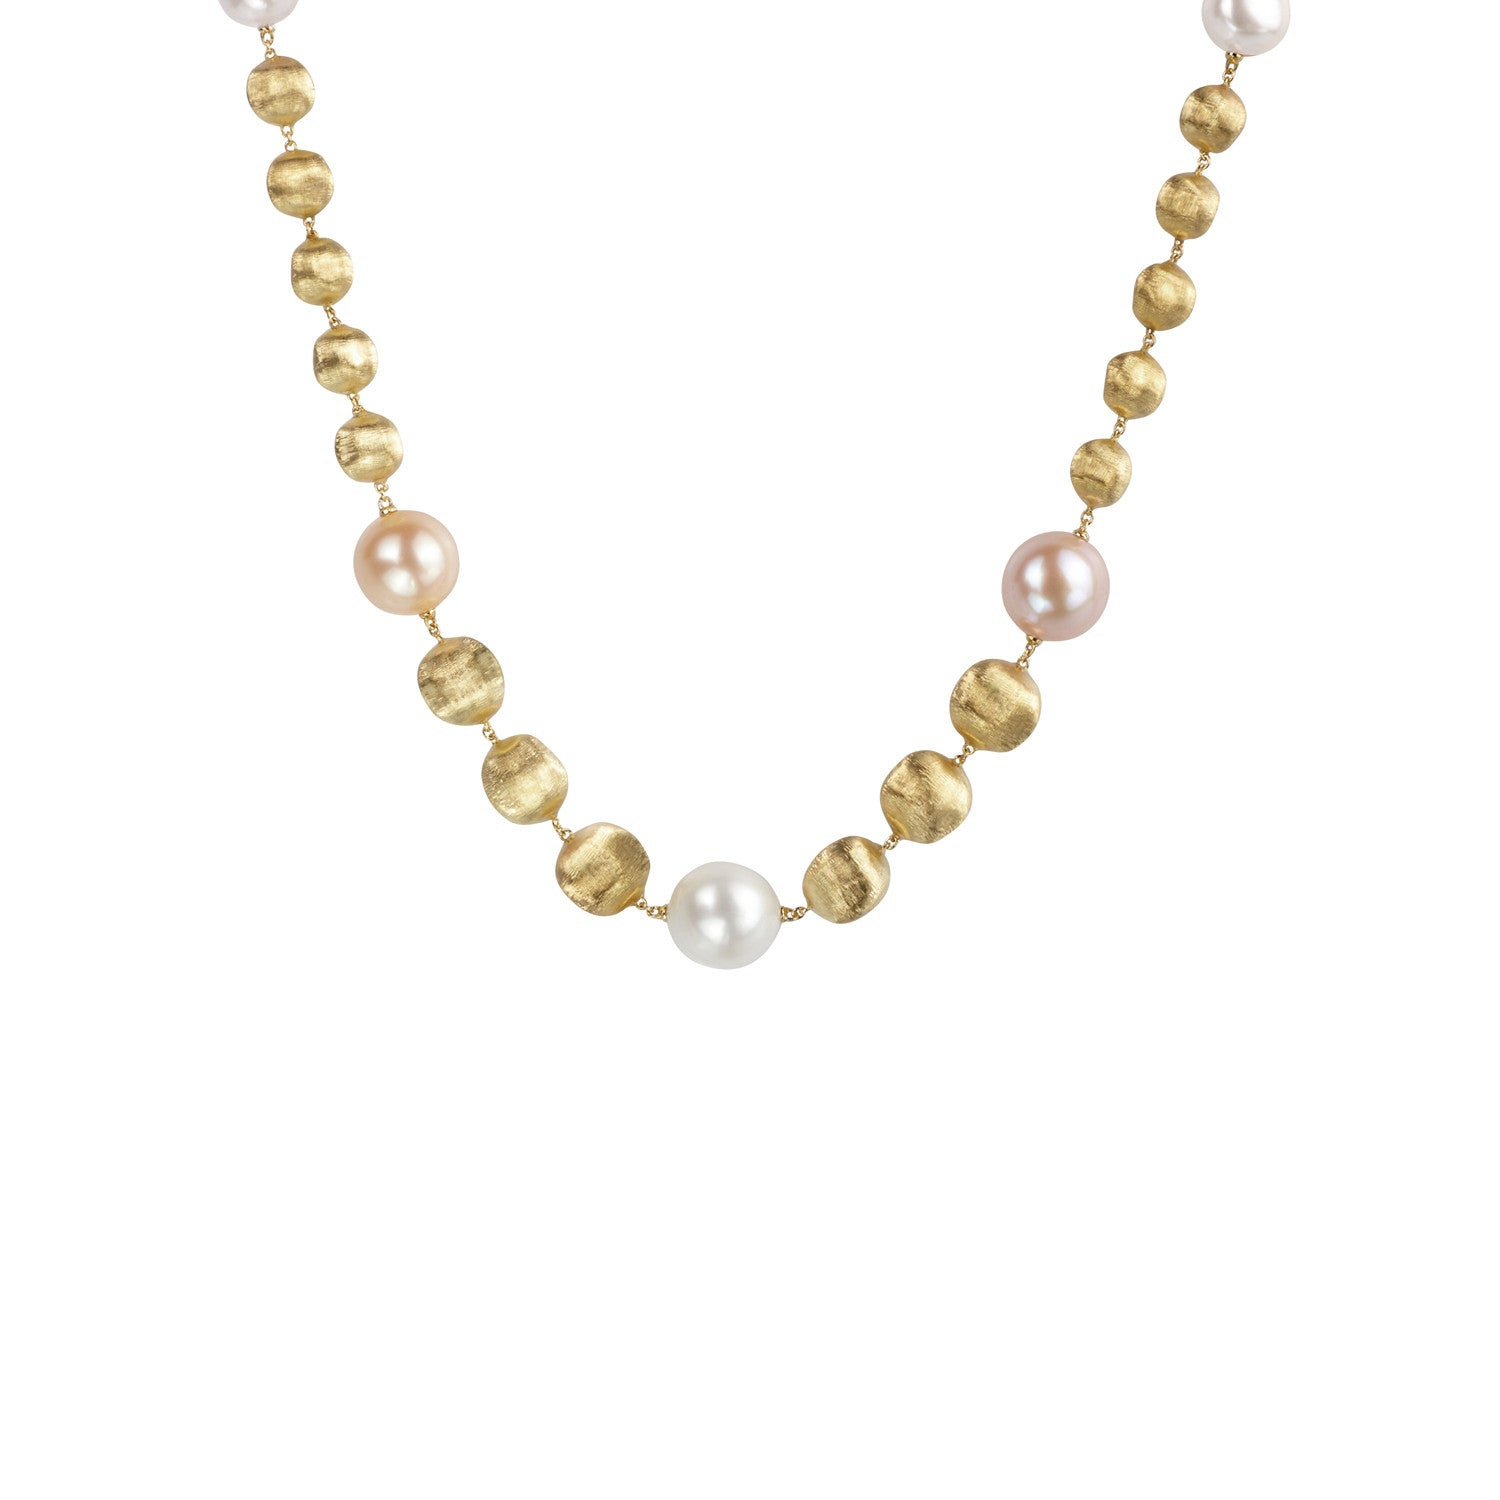 Africa Necklace in 18k Yellow Gold with Pearls -43cm - Orsini Jewellers NZ